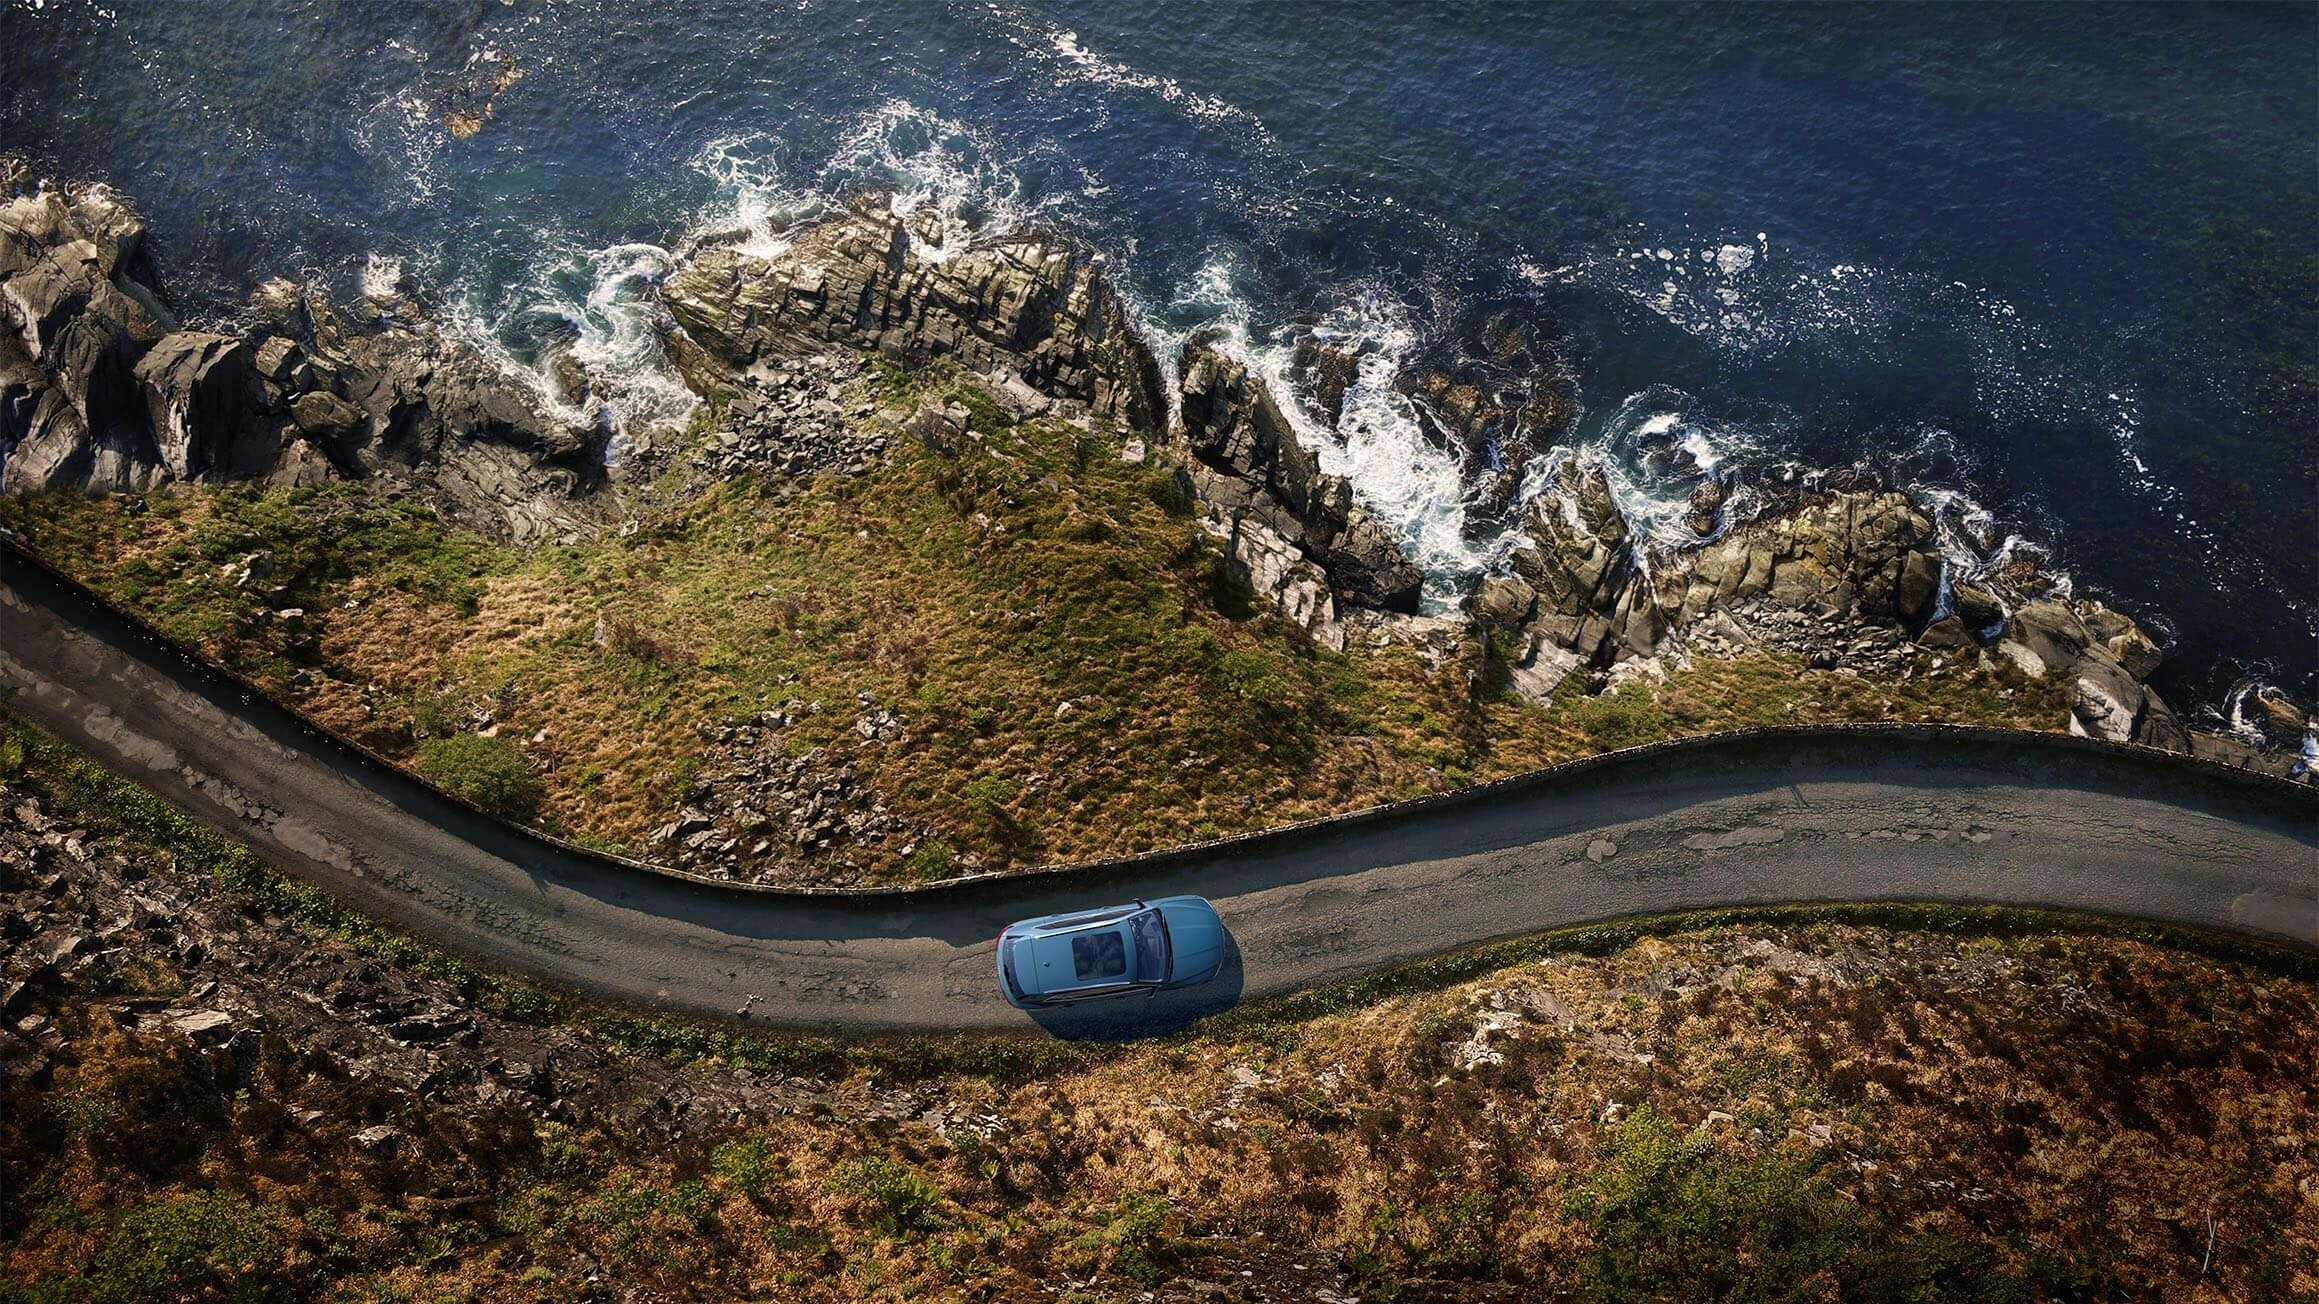 Image of an e-tron SUV driving along a costal road on the side of the ocean.